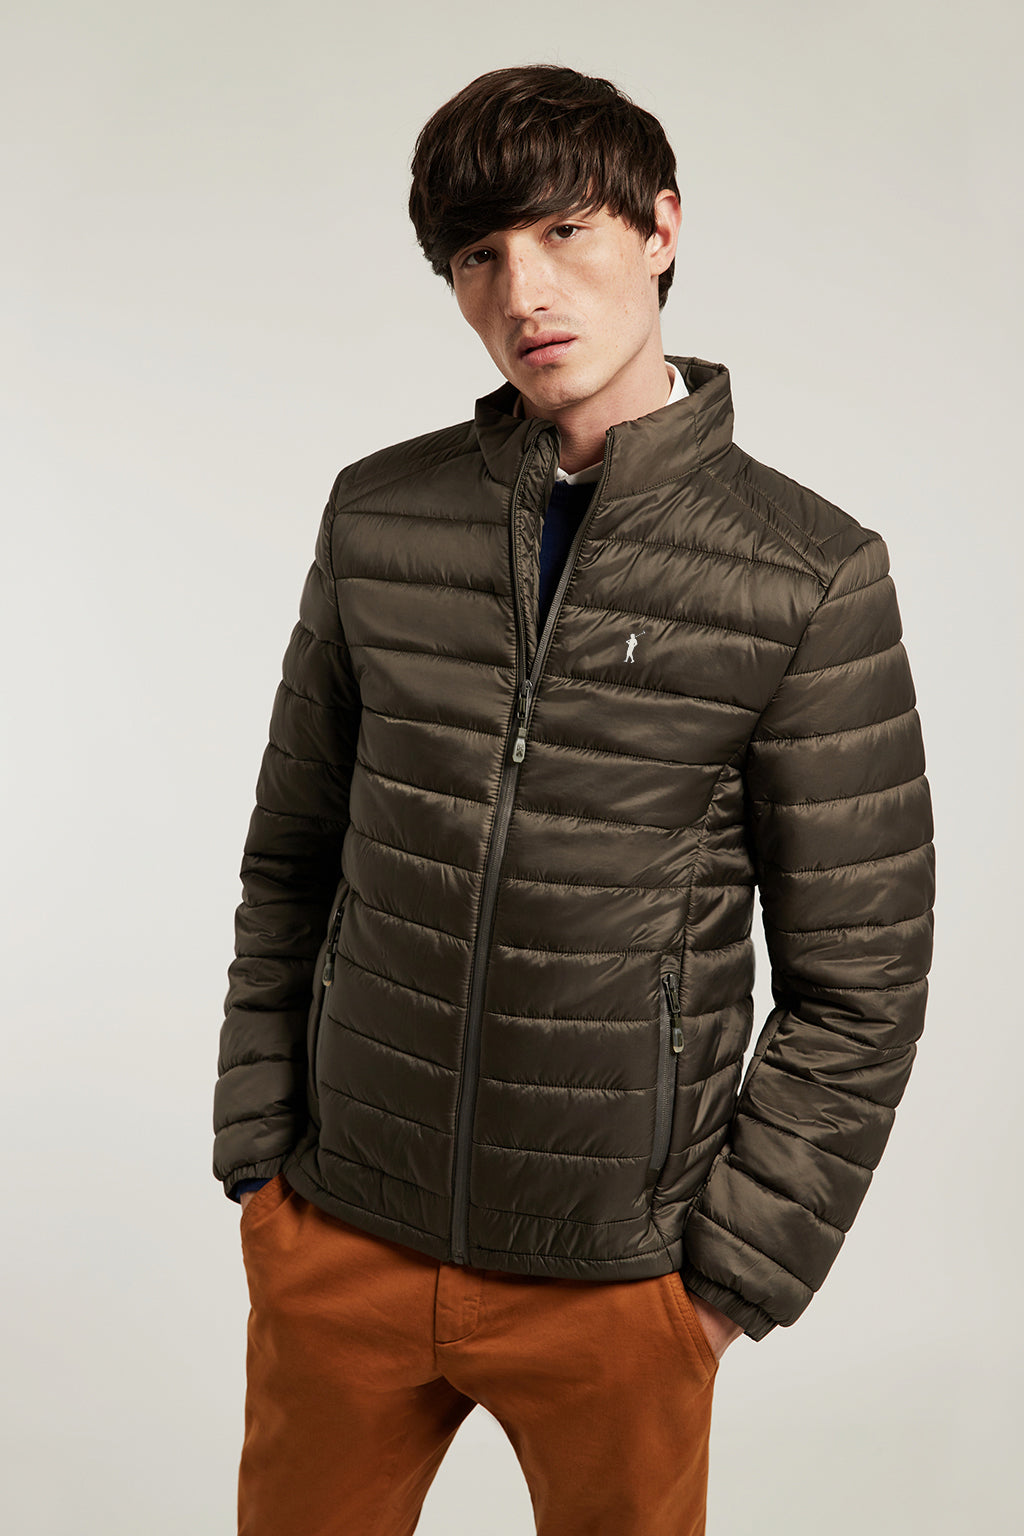 Green quilted jacket with heat-sealed zip closure